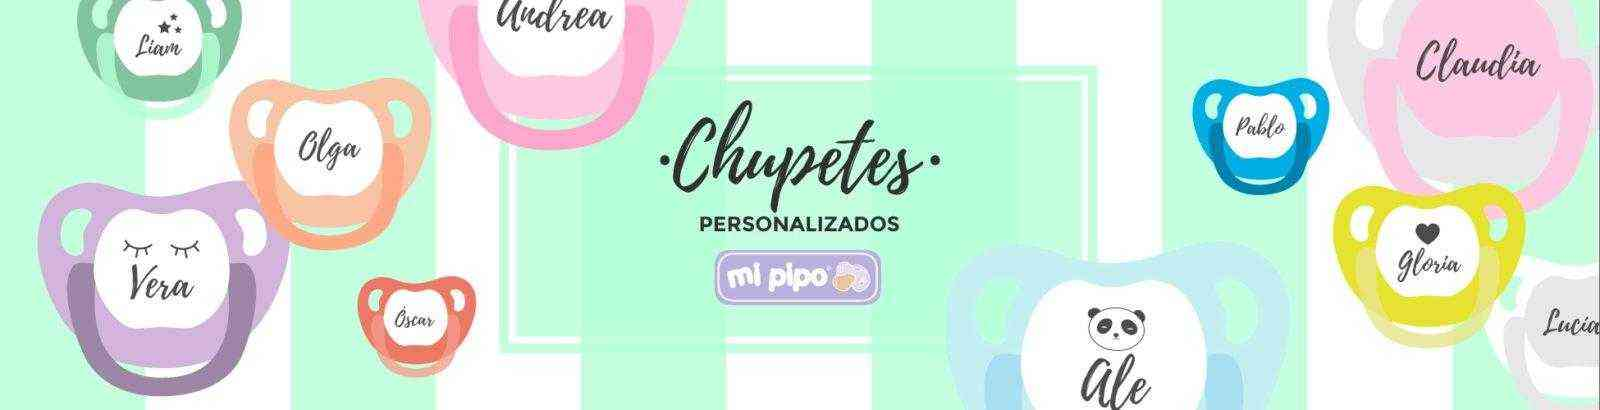 chupetes mipipo personalizados